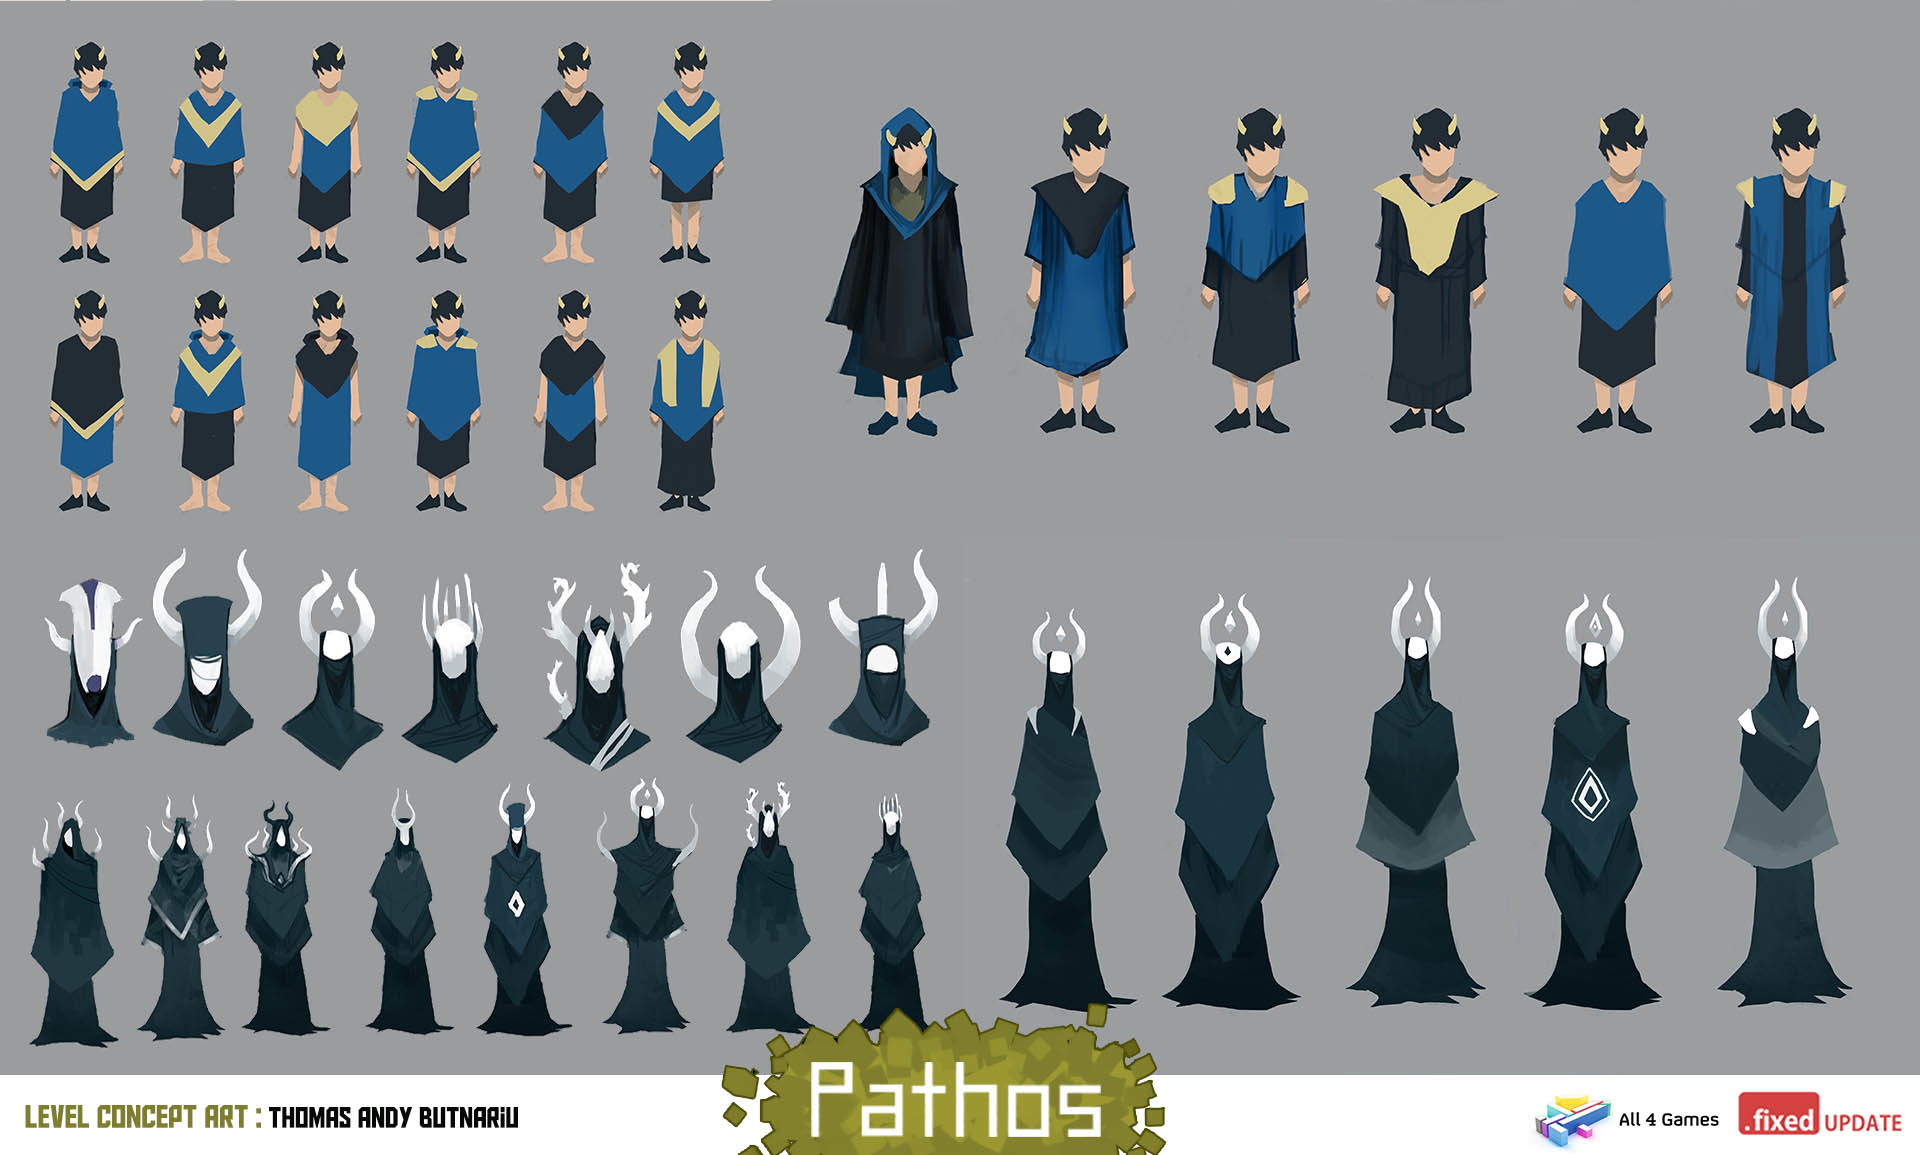 Character Designs for the main antagonist and a secondary character